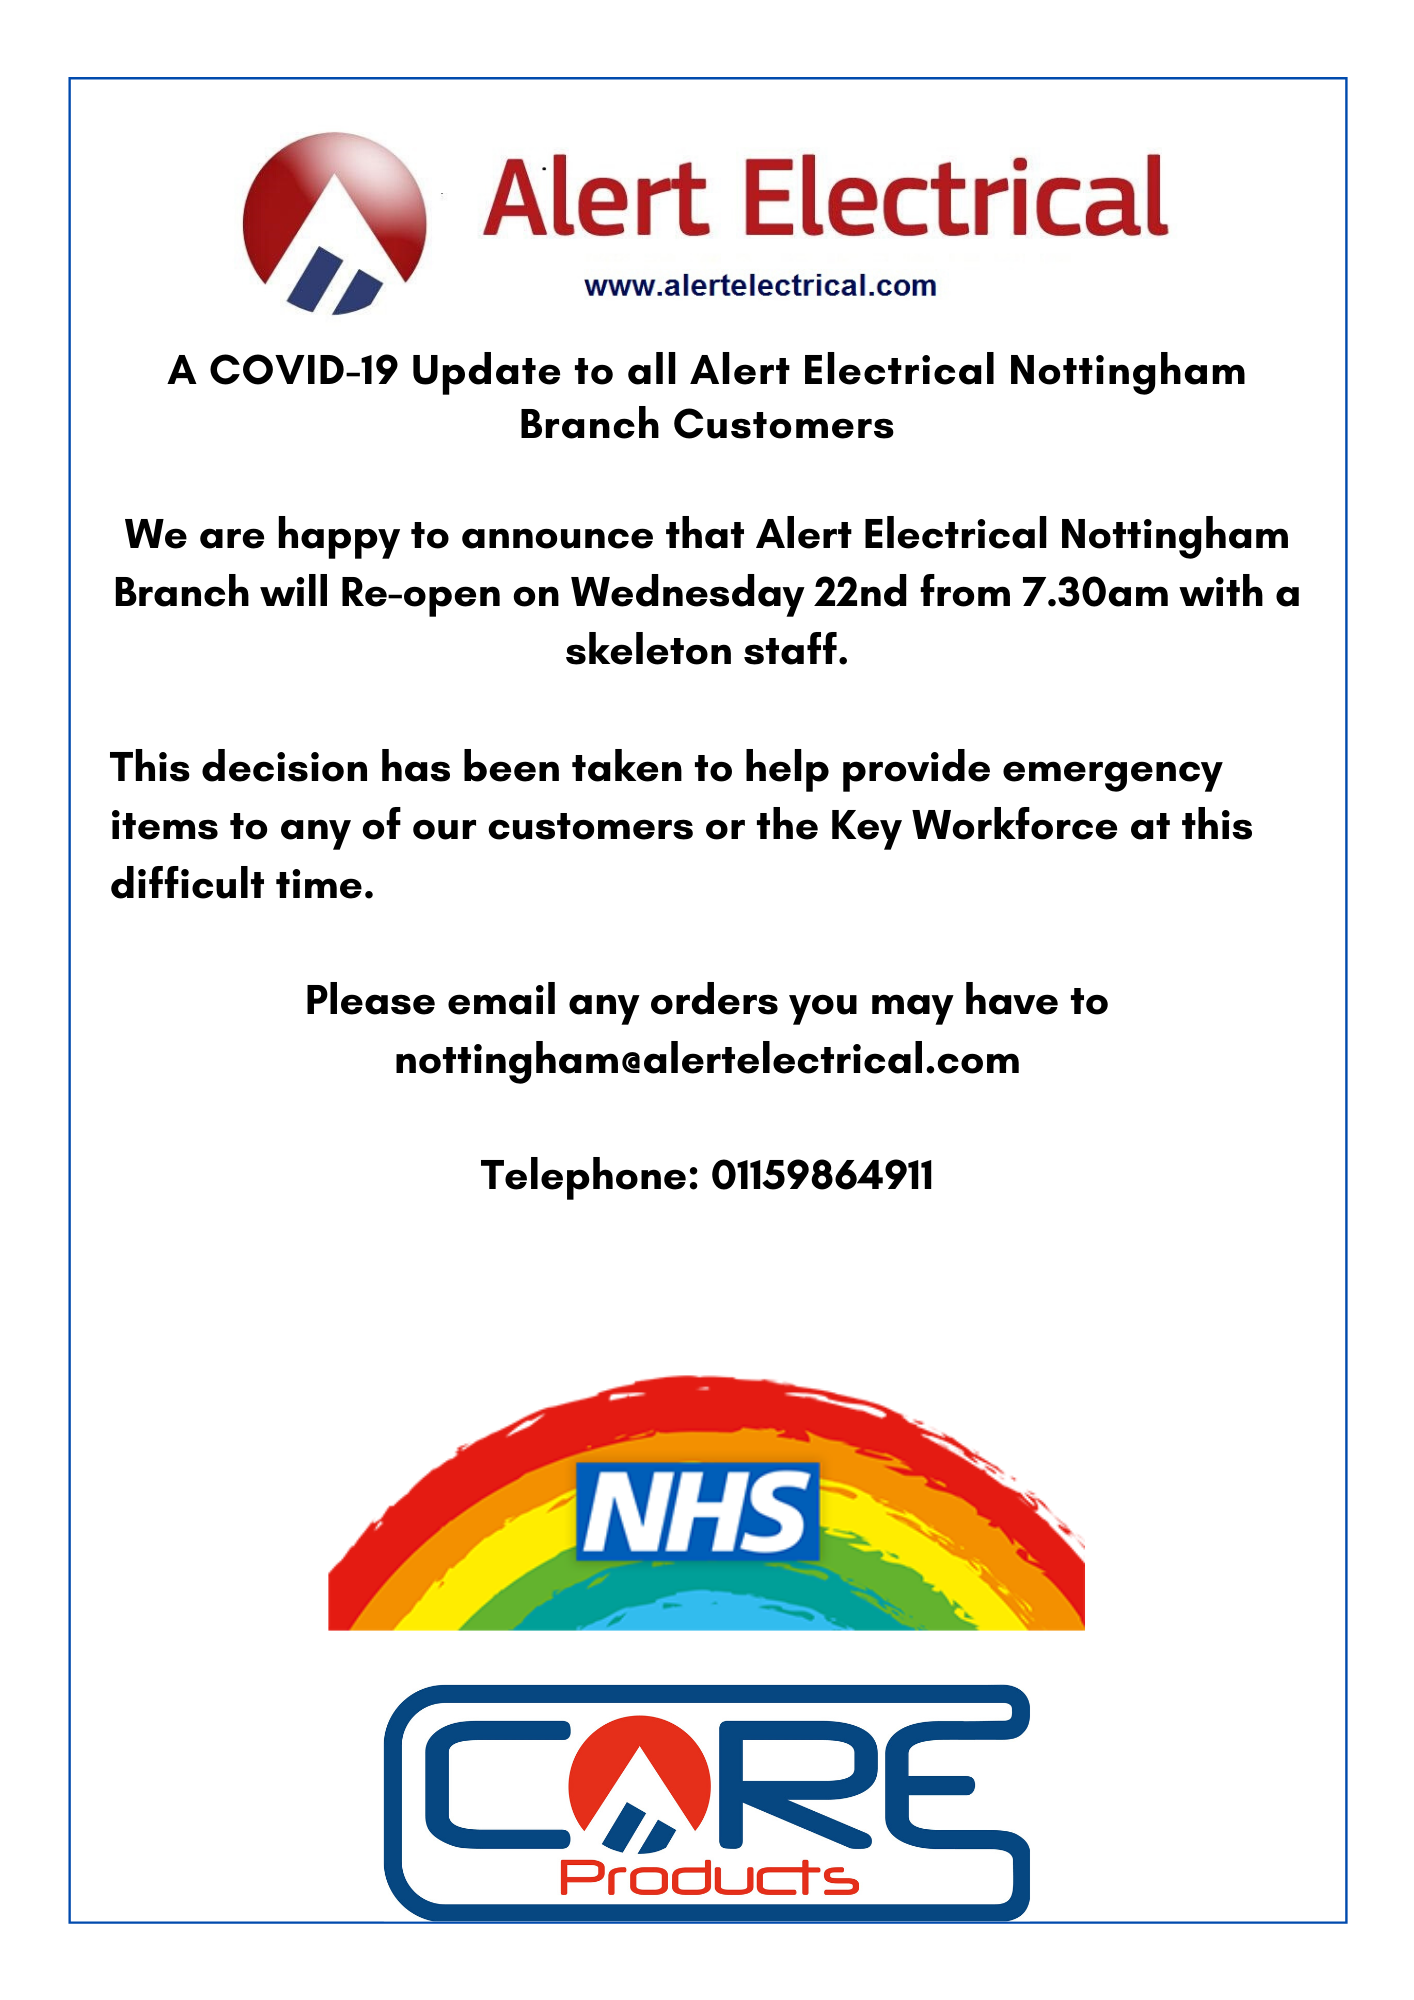 A COVID-19 Update to all Alert Electrical Nottingham Branch Customers